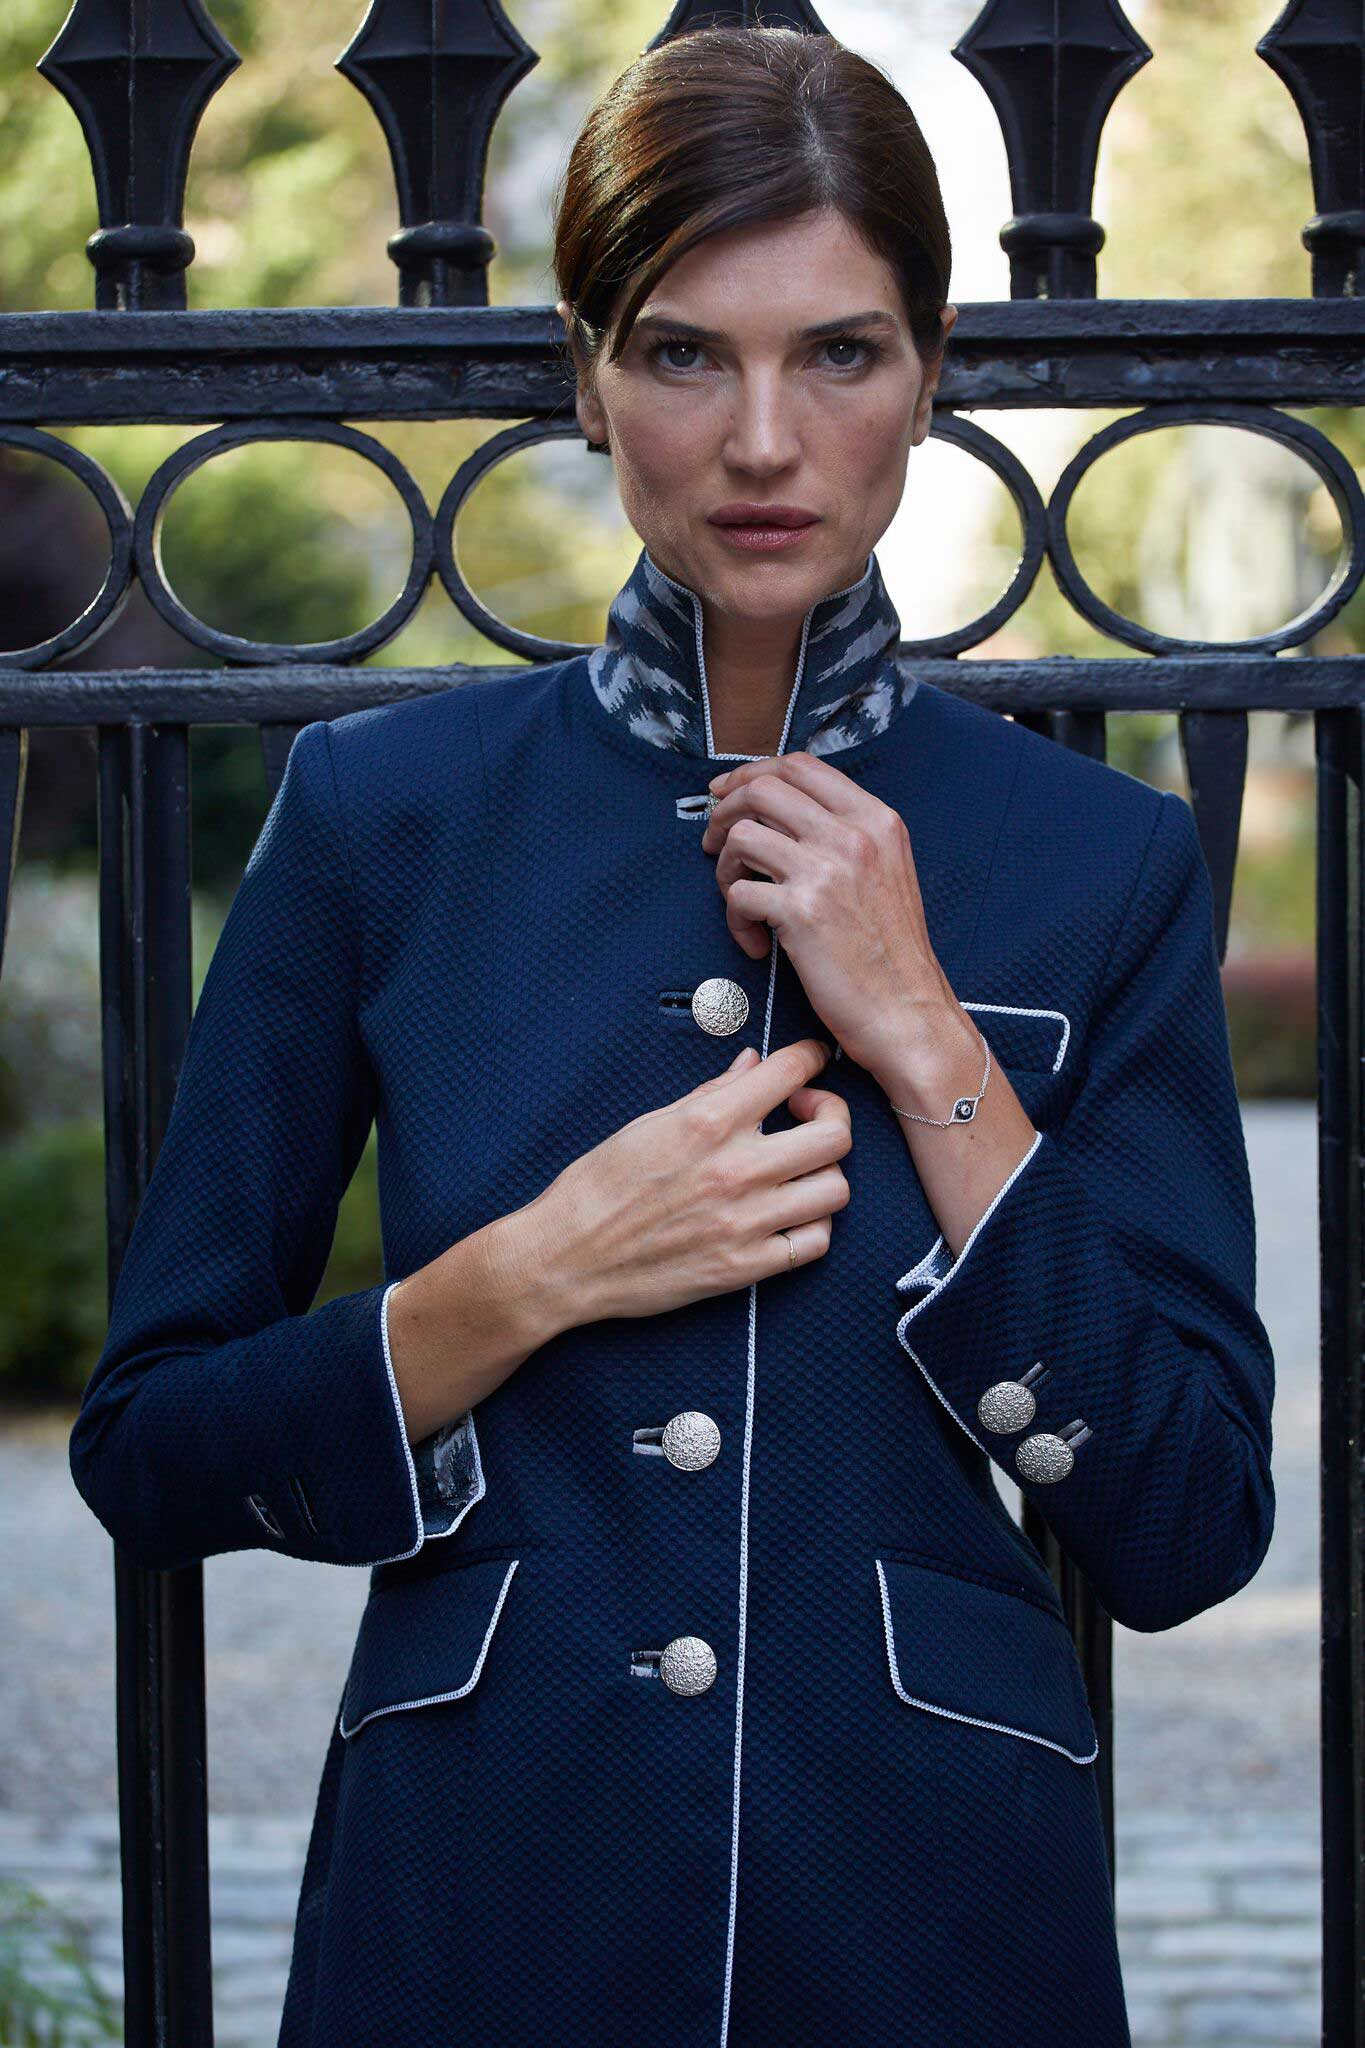 The Gianni Jacket with Designer Trim from the hand-tailored Gramercy Atelier Custom Collection.